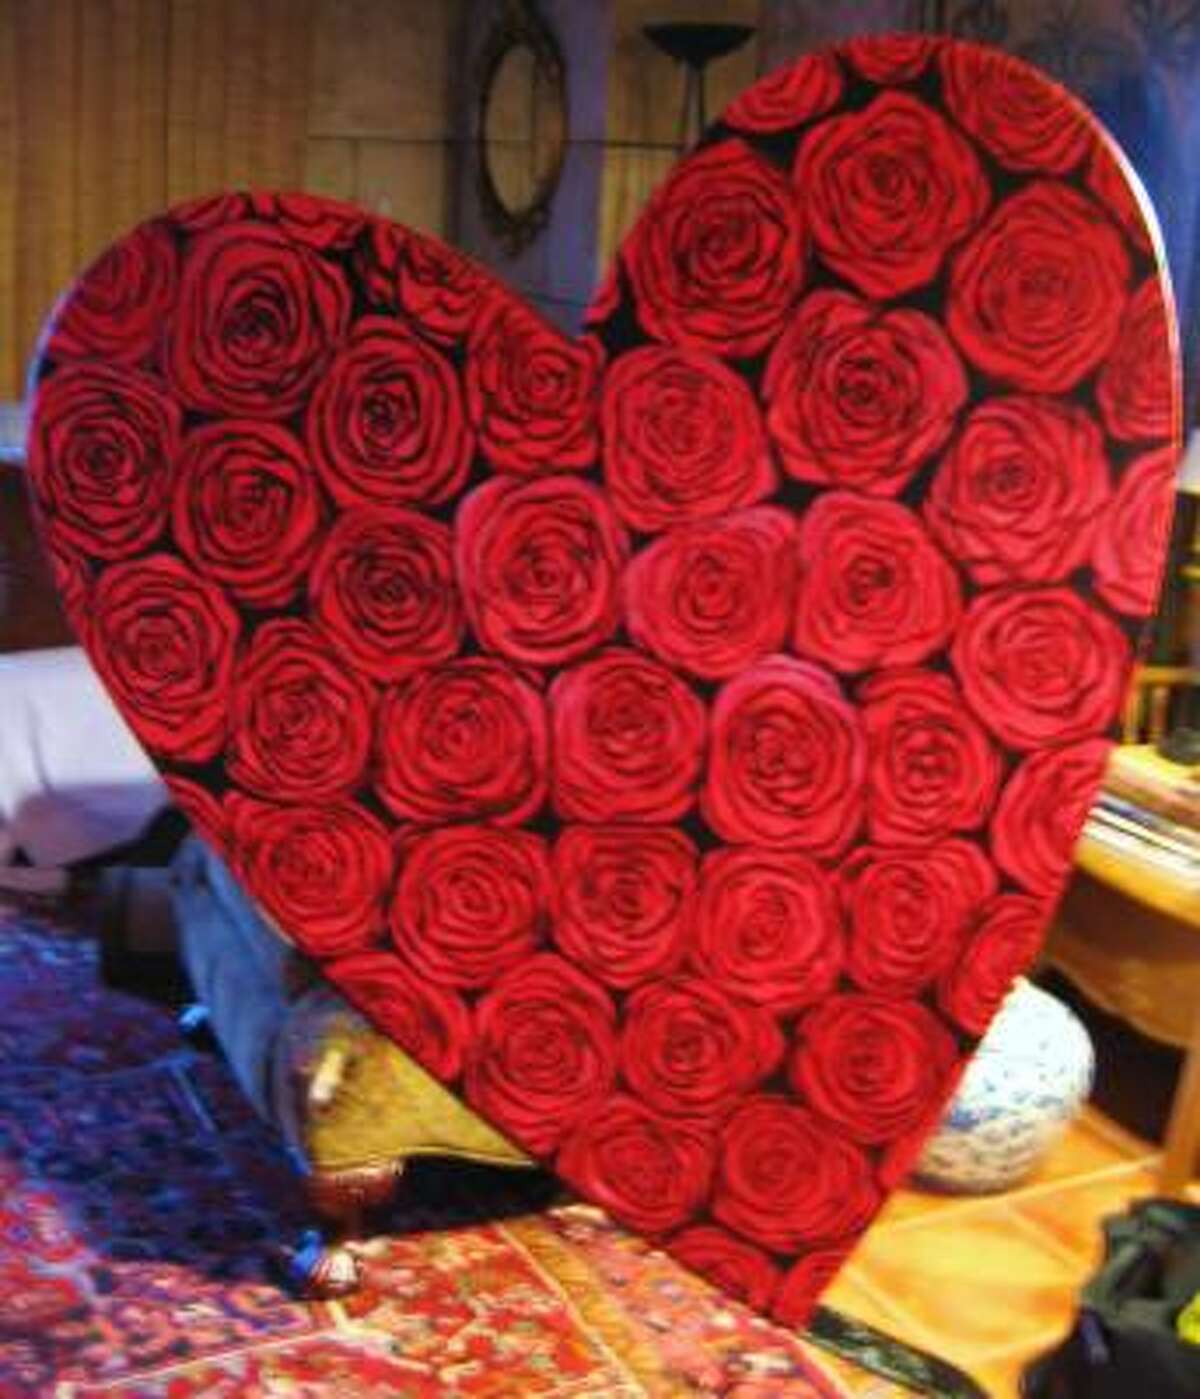 ROSY WORK: Artist Kermit Eisenhut created his Heart Deco piece, left, with roses. The work is one of 10 pieces that will be unveiled May 25 as part of an art show to benefit the American Heart Association.